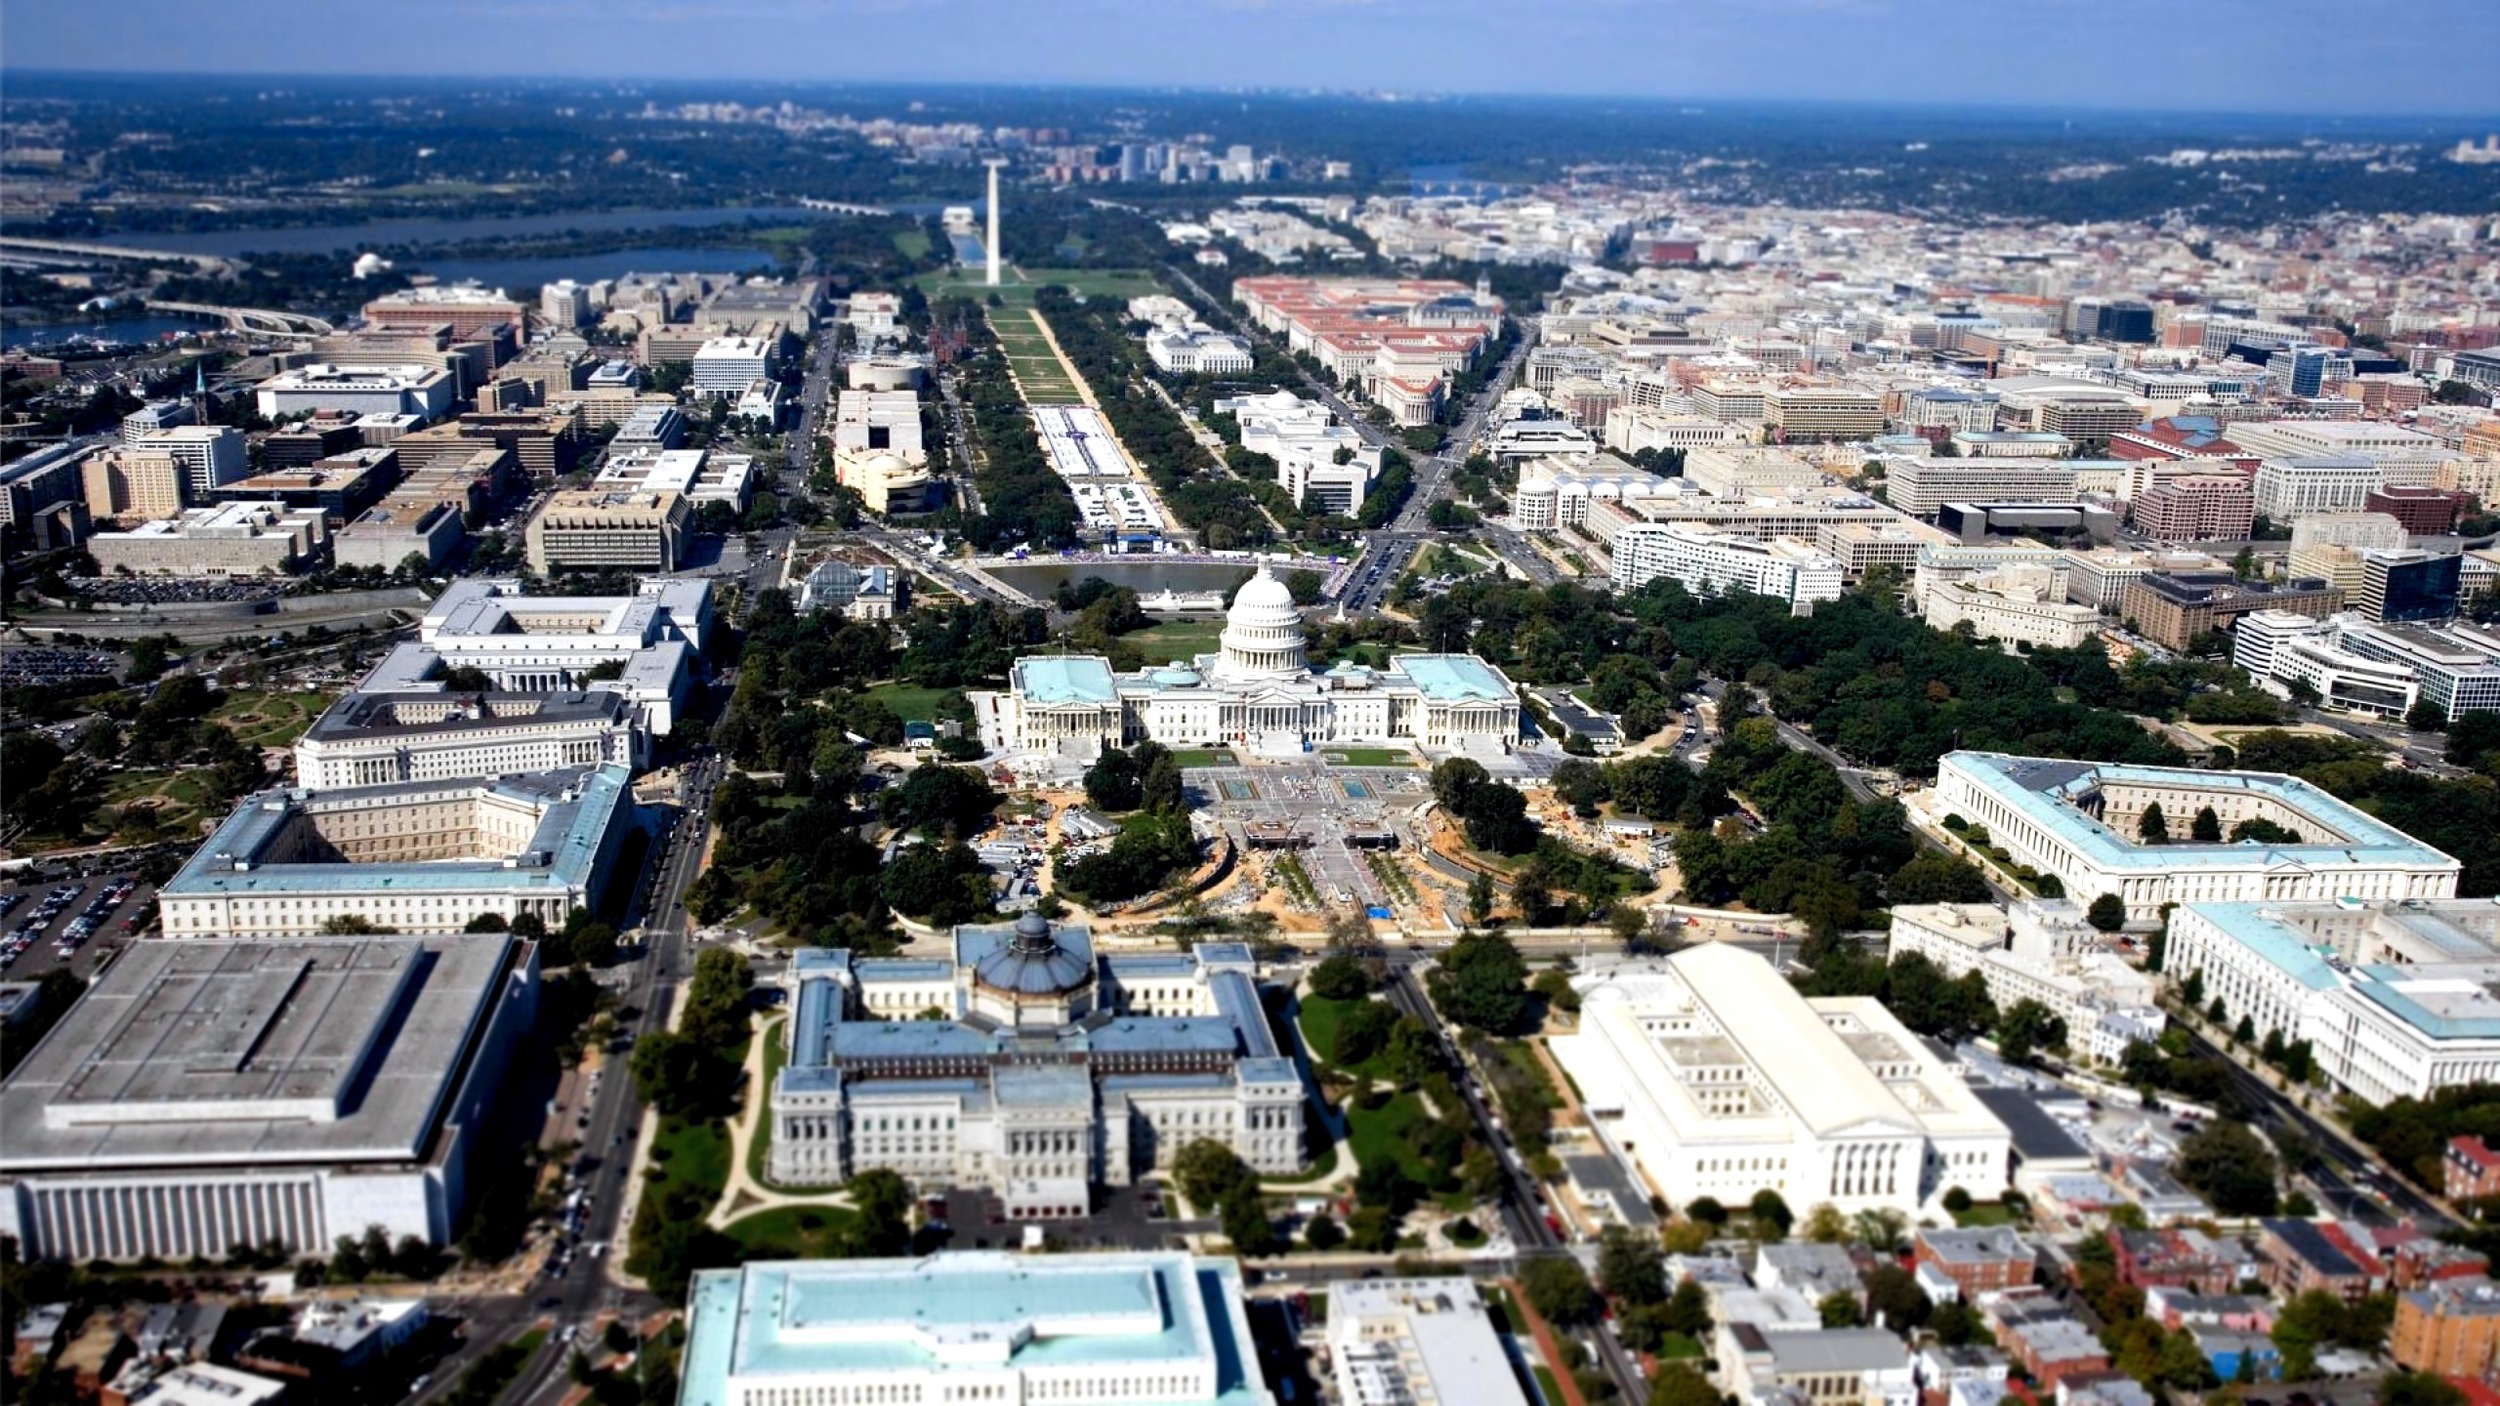 D.C. born and bred, we take great pride living in a city of such intellectual power and professional accomplishment. Washingtonians excel in the realms of government and politics, law and business, medicine and science, education... the list goes on.      As health professionals, we strive to improve the health of our community. Hard work and professional commitment can take a toll on personal health, and our challenge is to help individuals, families, and communities get healthy - and stay healthy through proven, sensible lifestyle changes through proper nutrition, exercise, and stress reduction.